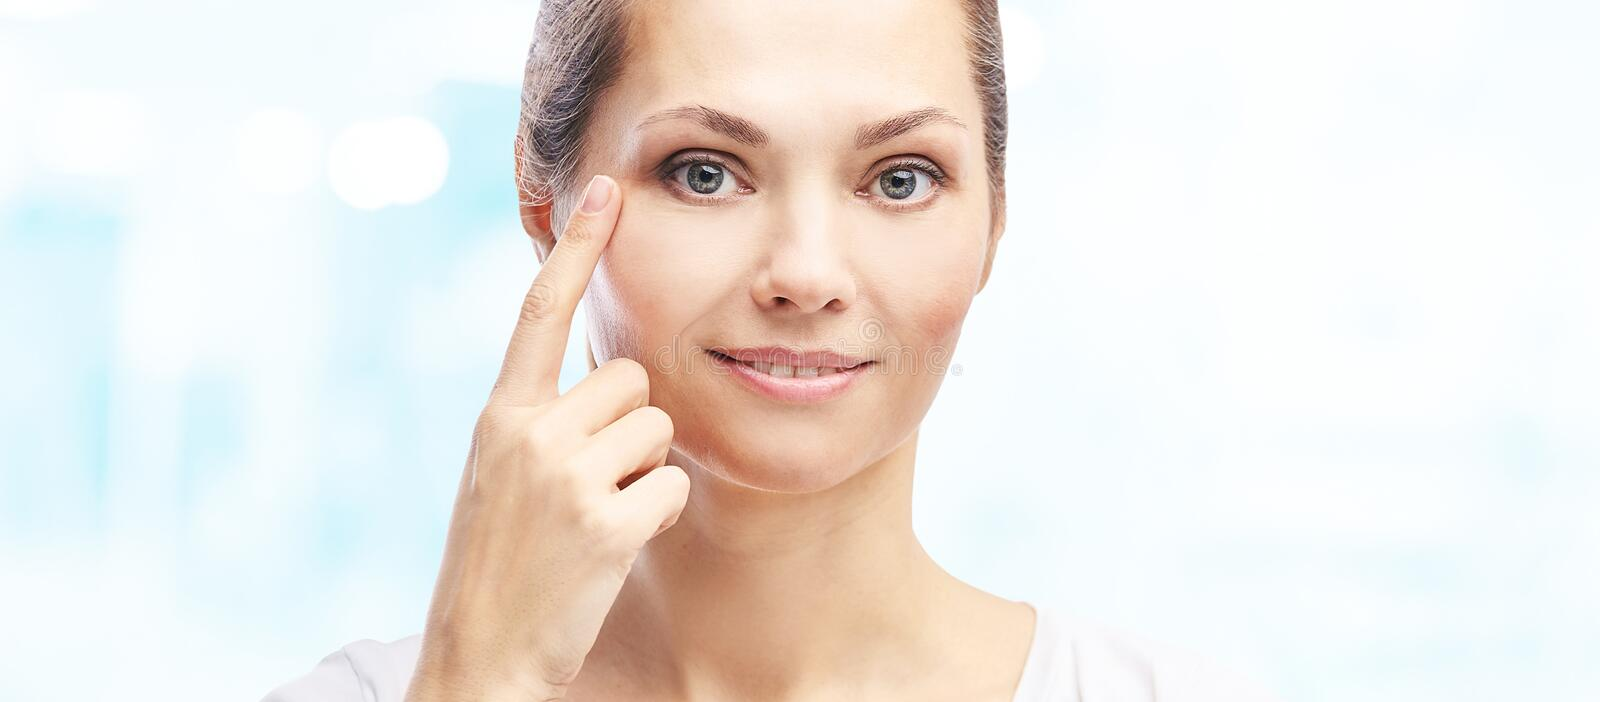 Woman point at dermatology skin problem. Cosmetology beauty girl portrait. Face care procedure royalty free stock images